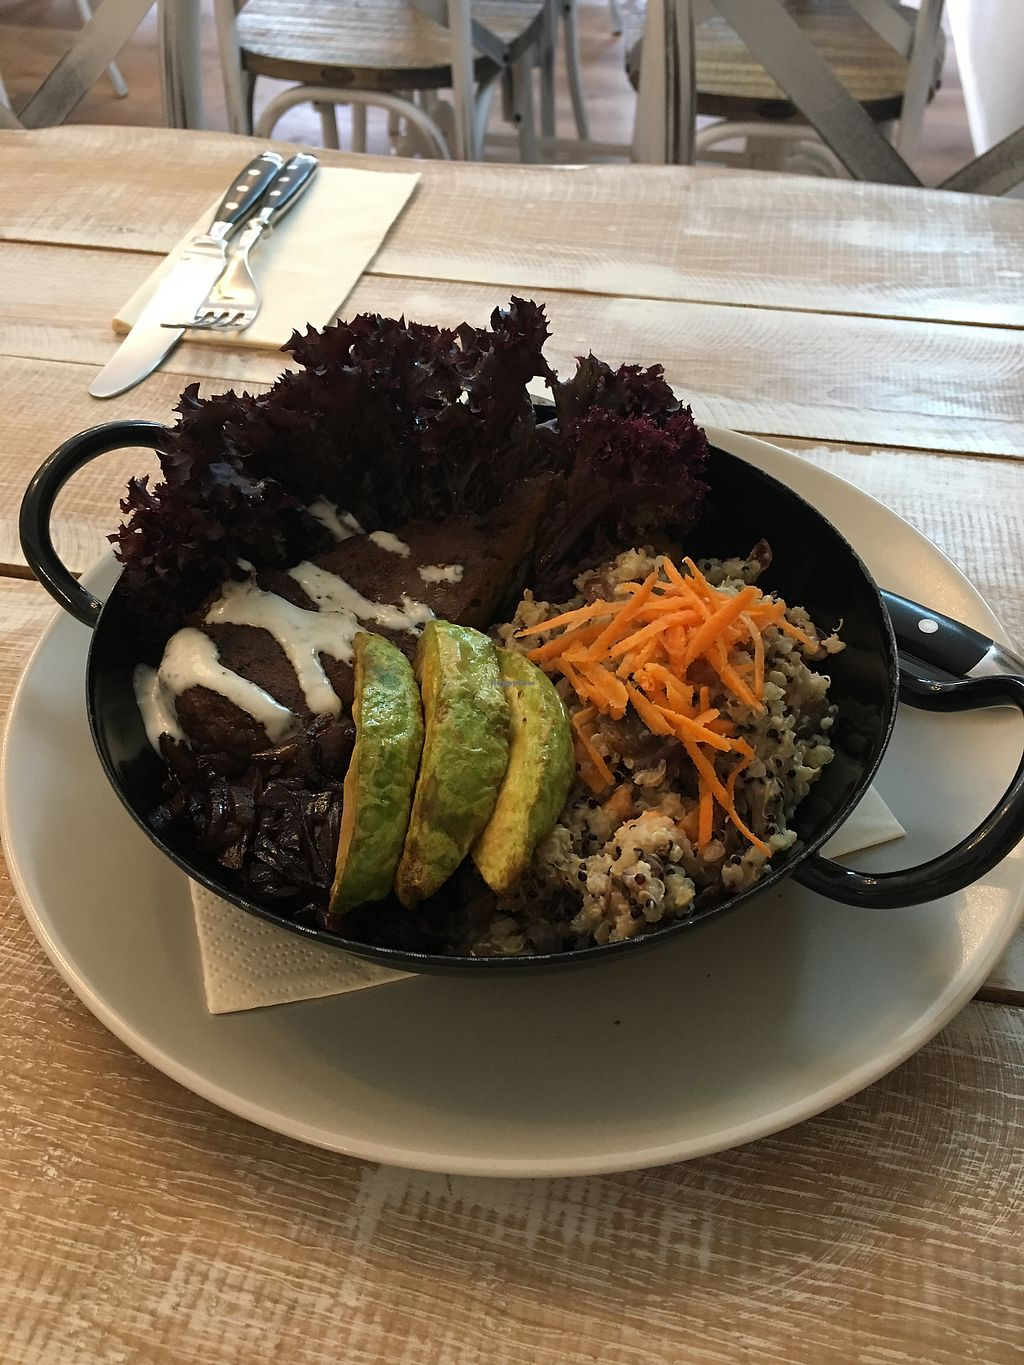 """Photo of Veggiezz - Opernring  by <a href=""""/members/profile/LilyHarper"""">LilyHarper</a> <br/>Steak bowl - AHHHHMAZING <br/> September 7, 2017  - <a href='/contact/abuse/image/96634/301794'>Report</a>"""